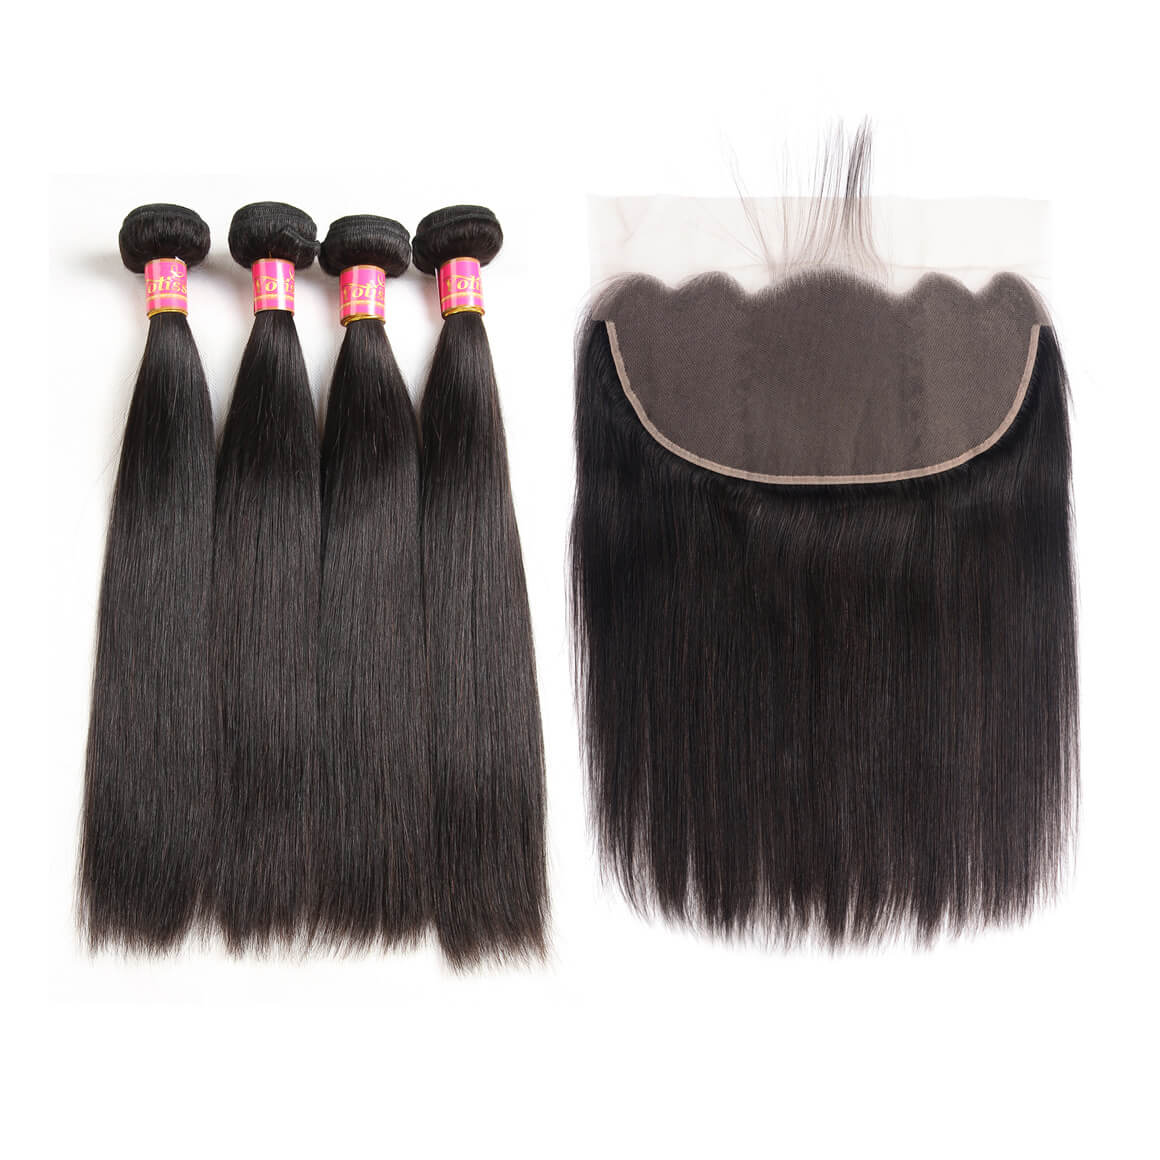 Straight Virgin Hair 4 Bundles